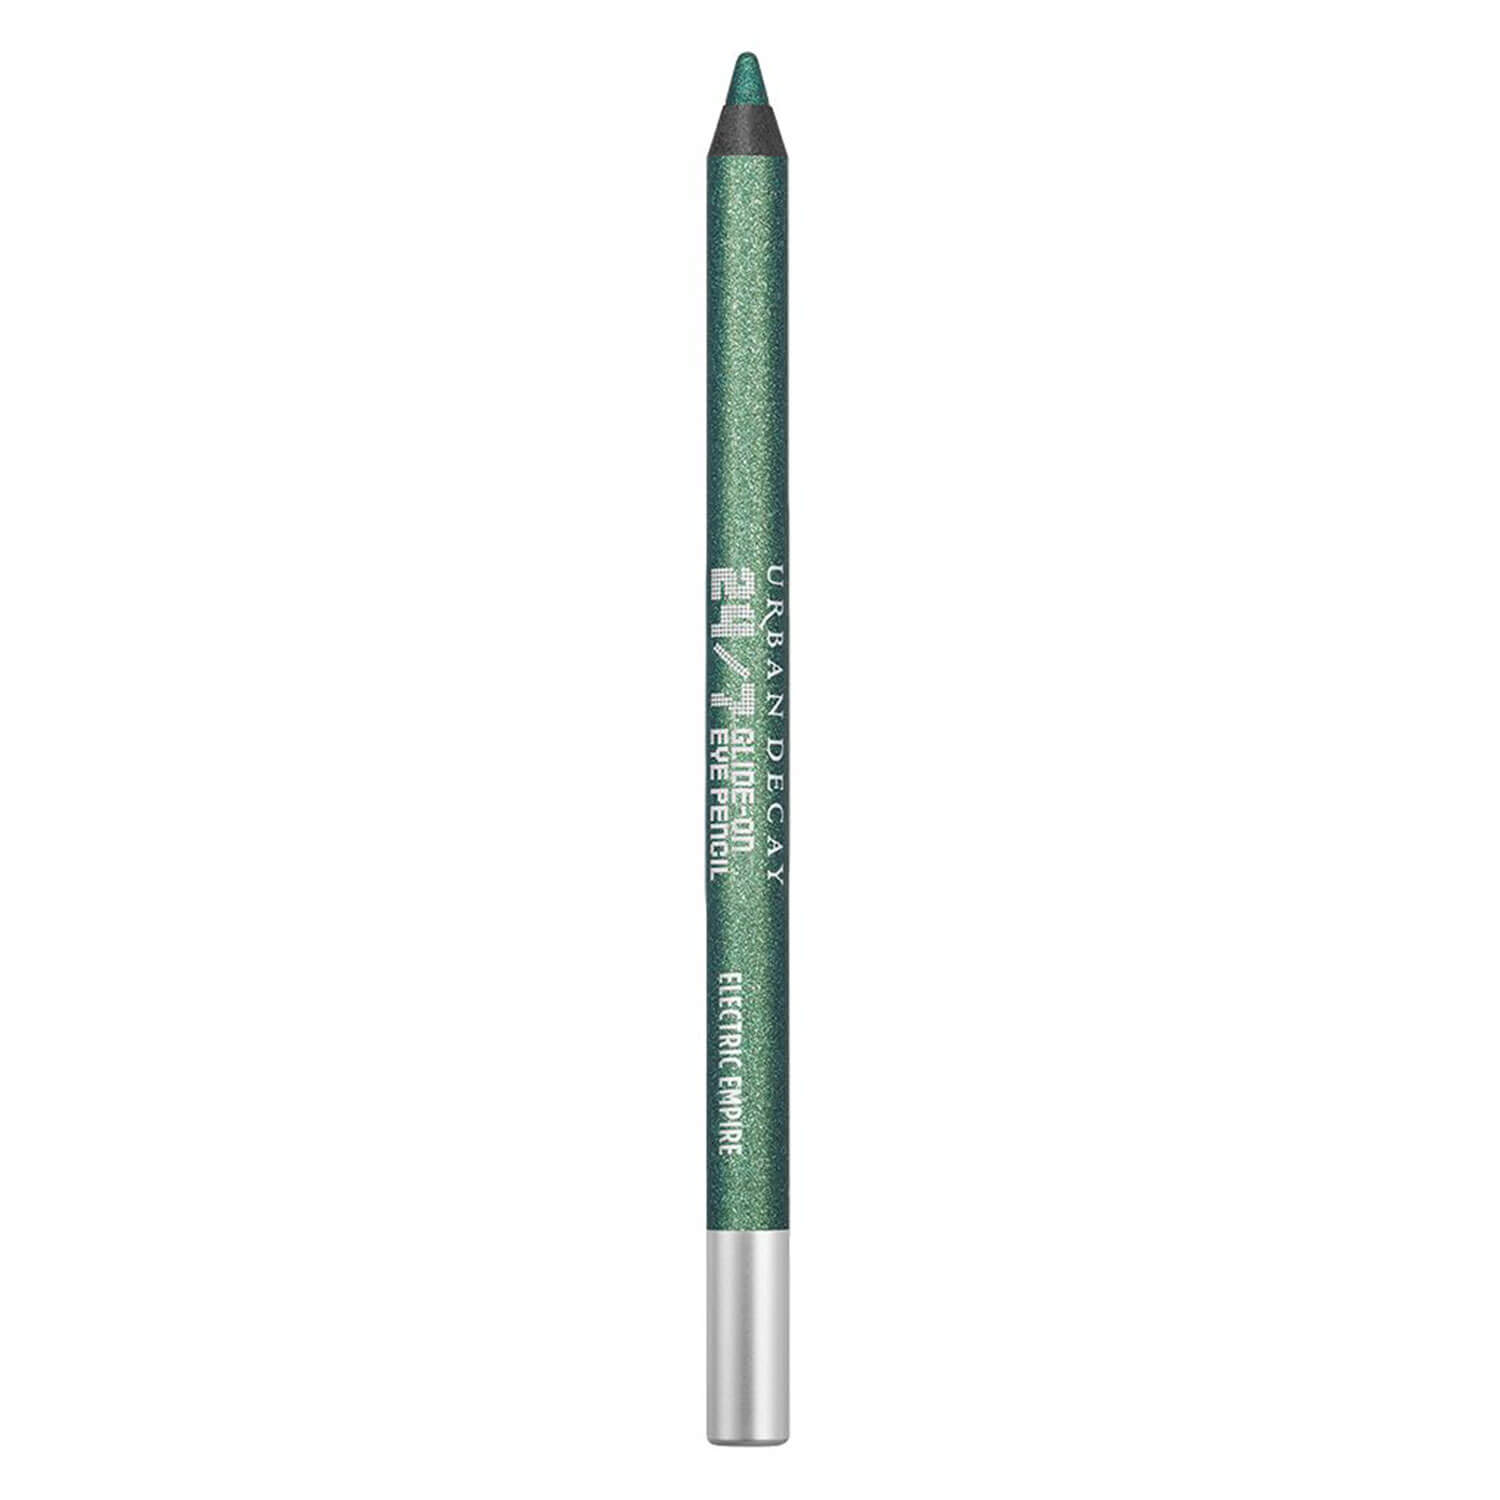 24/7 Glide-On - Eye Pencil Electric Empire